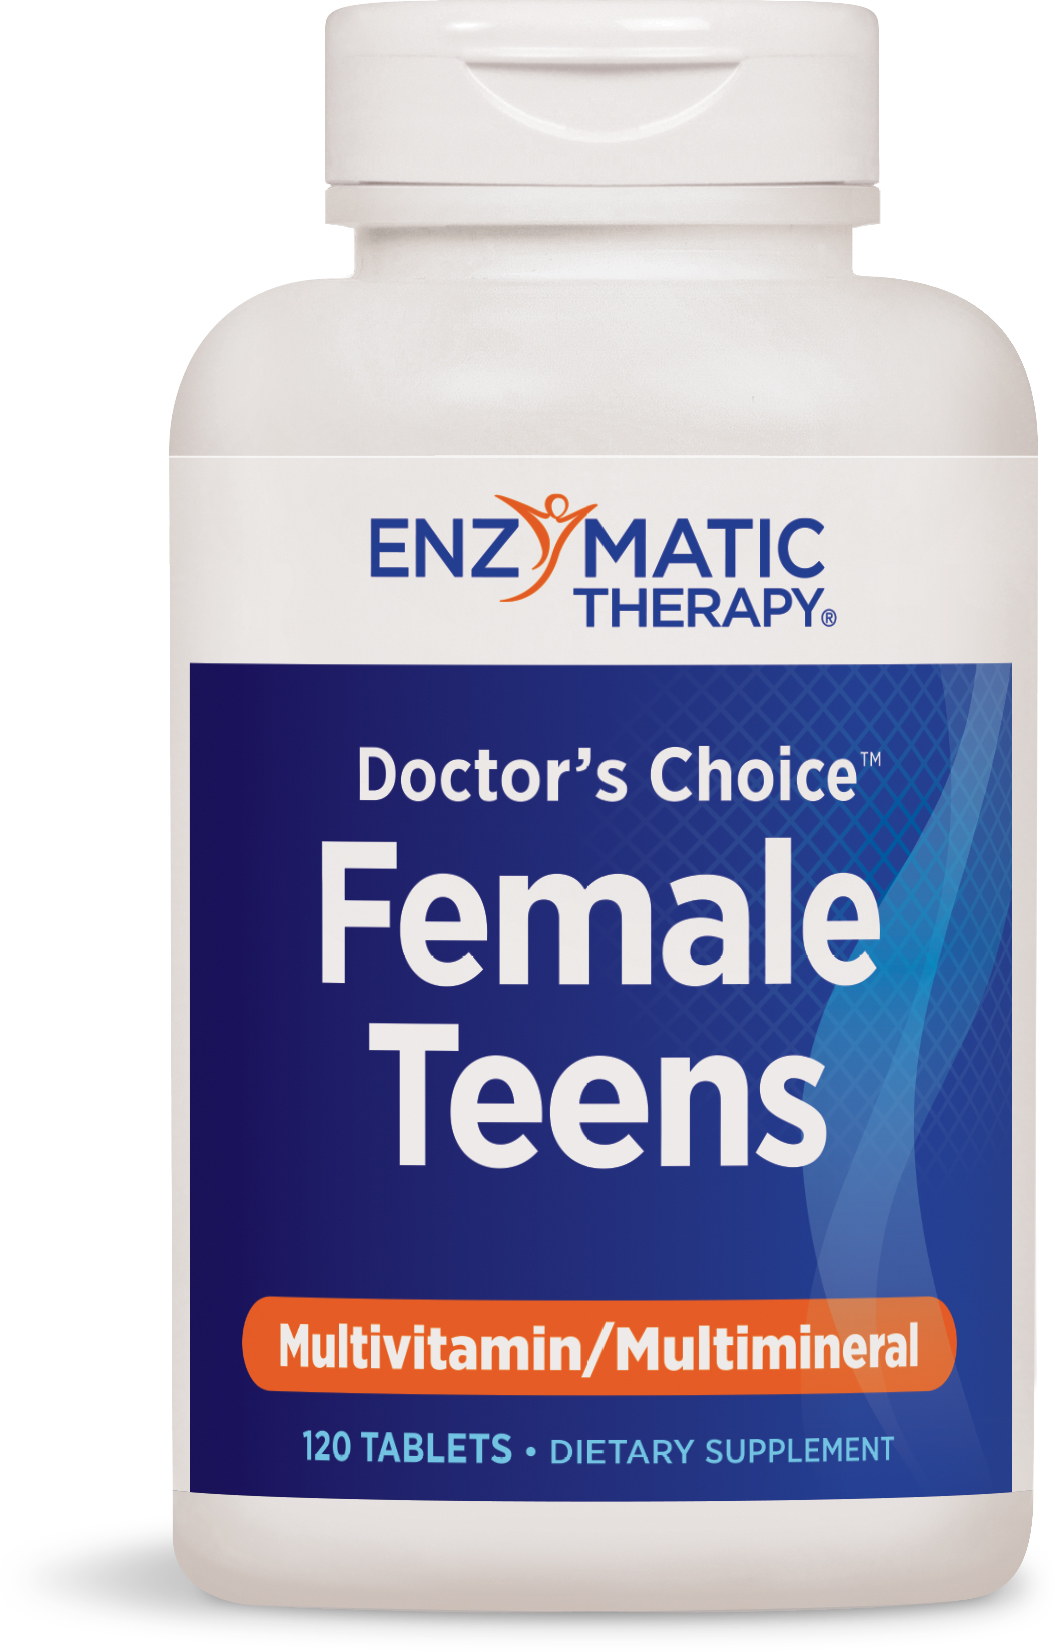 Doctor's Choice Multivitamins for Female Teens 120 tabs by Enzymatic Therapy